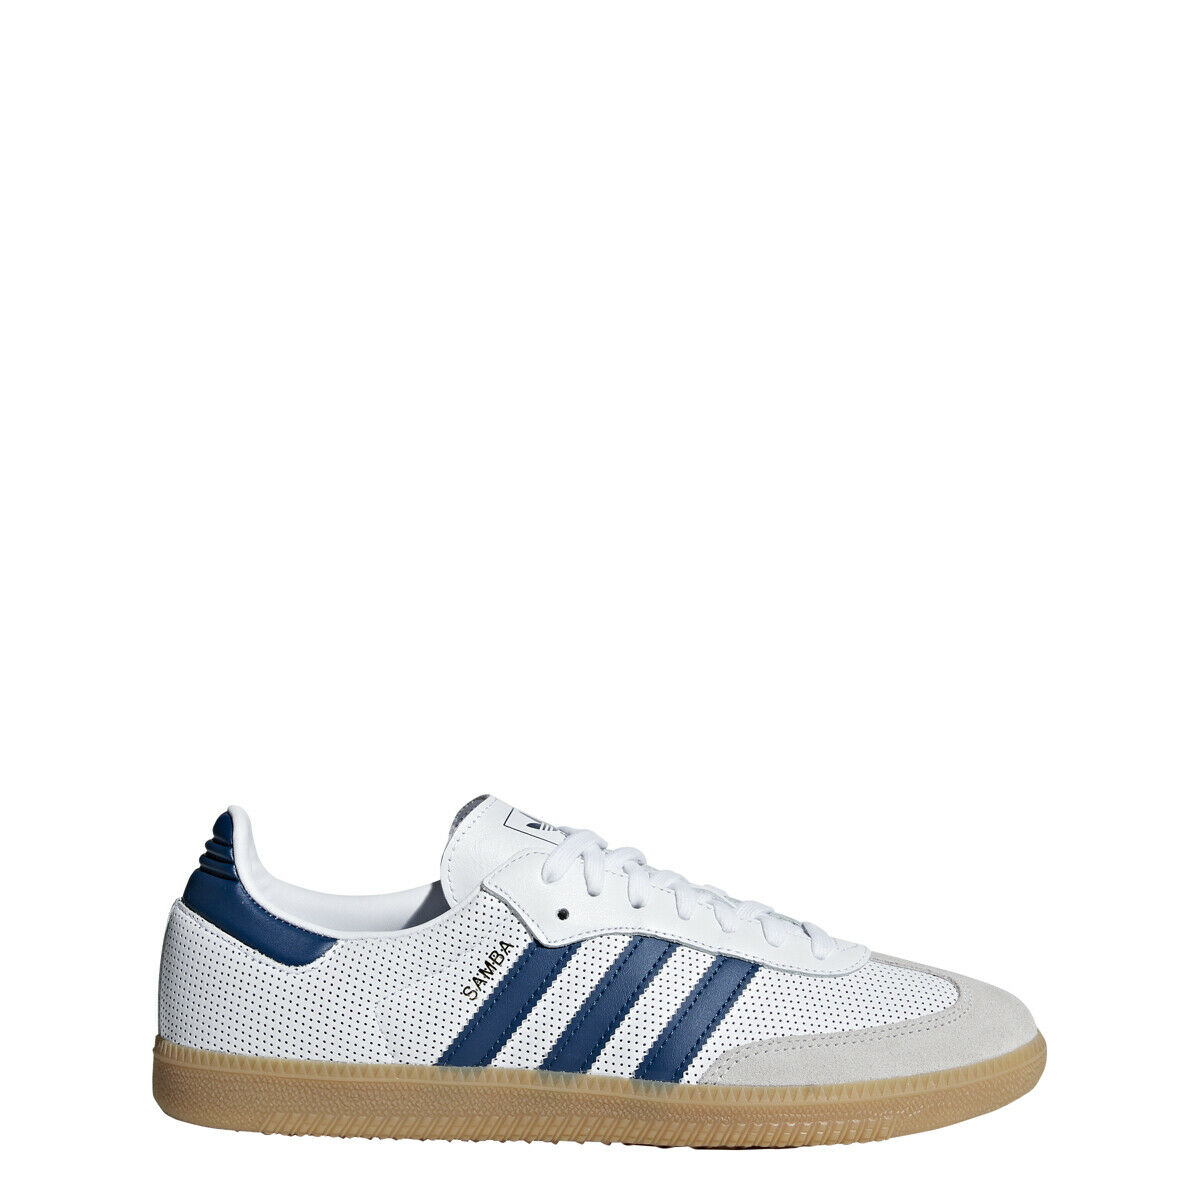 New Adidas Men's Men's Men's Originals Samba OG shoes (BD7545)  White    Legend Marine-Grey a89482